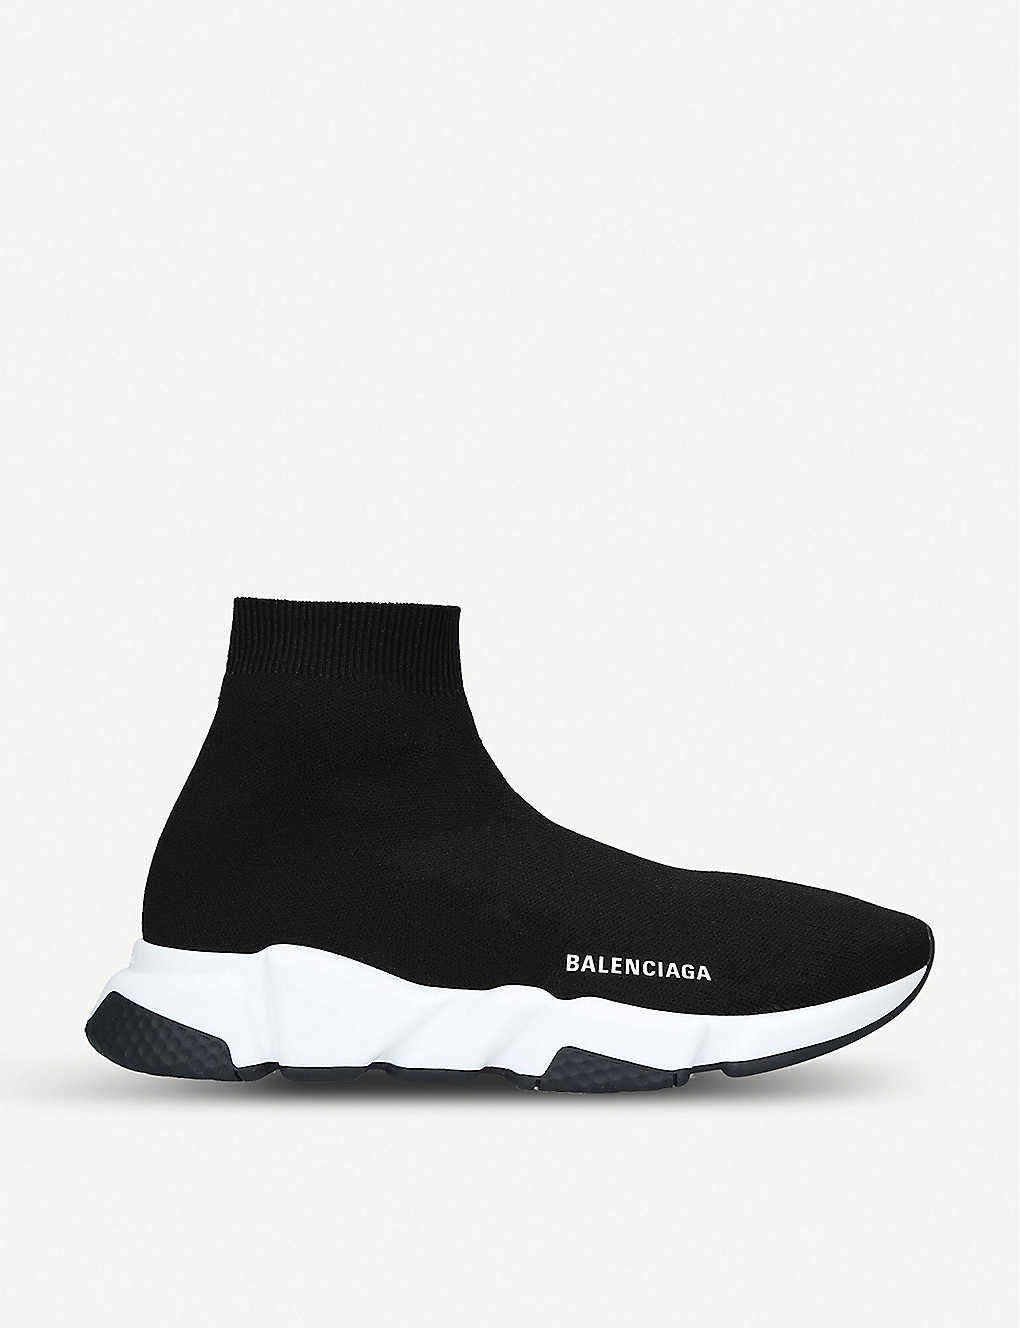 Balenciaga Speed Trainer Grey 'bb' Sneakers in Gray Save